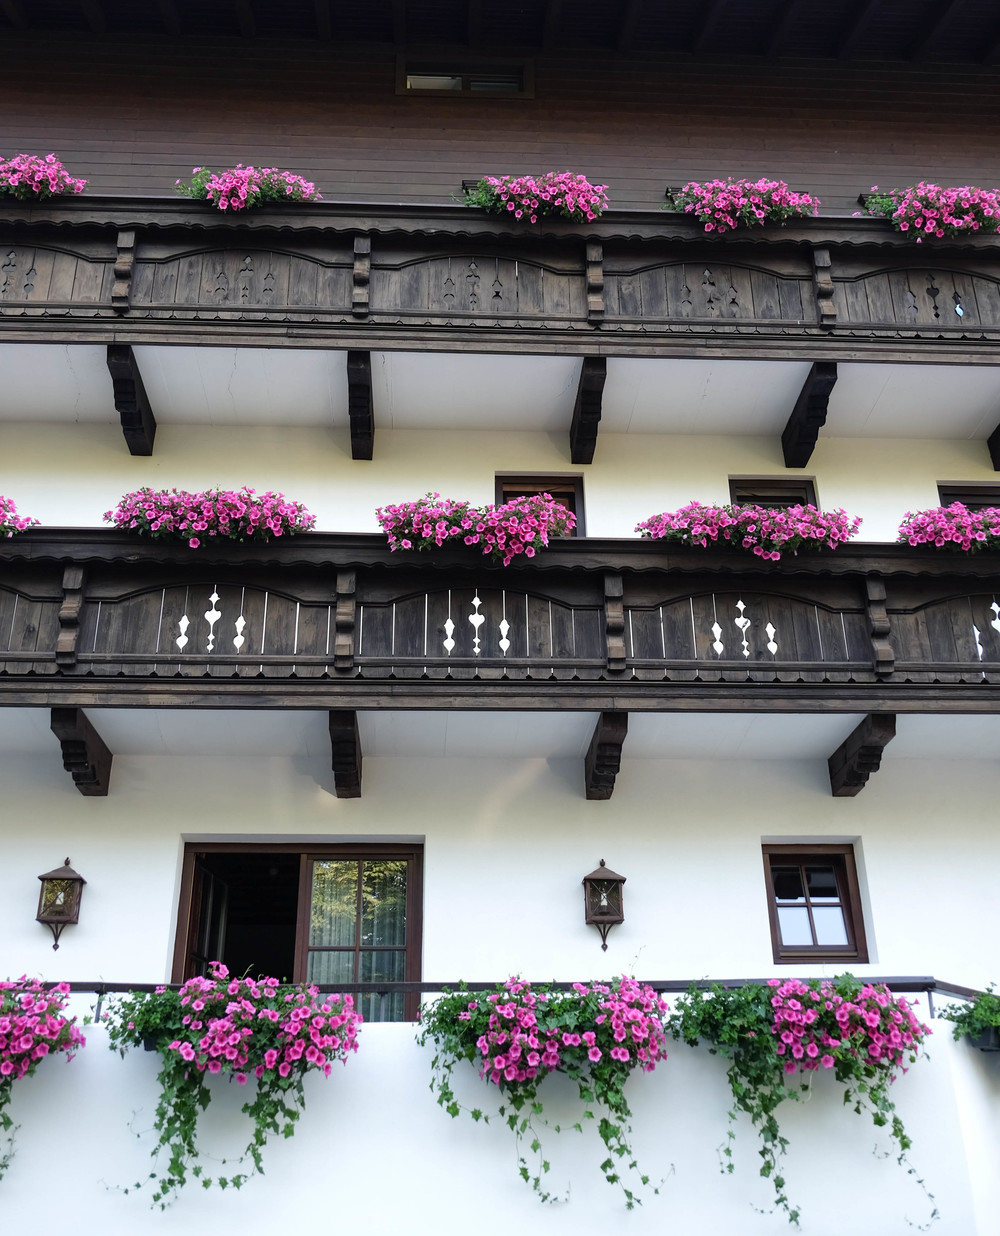 LaurenSchwaiger-Travel-Blog-Austrian-Flower-Balconies.jpg